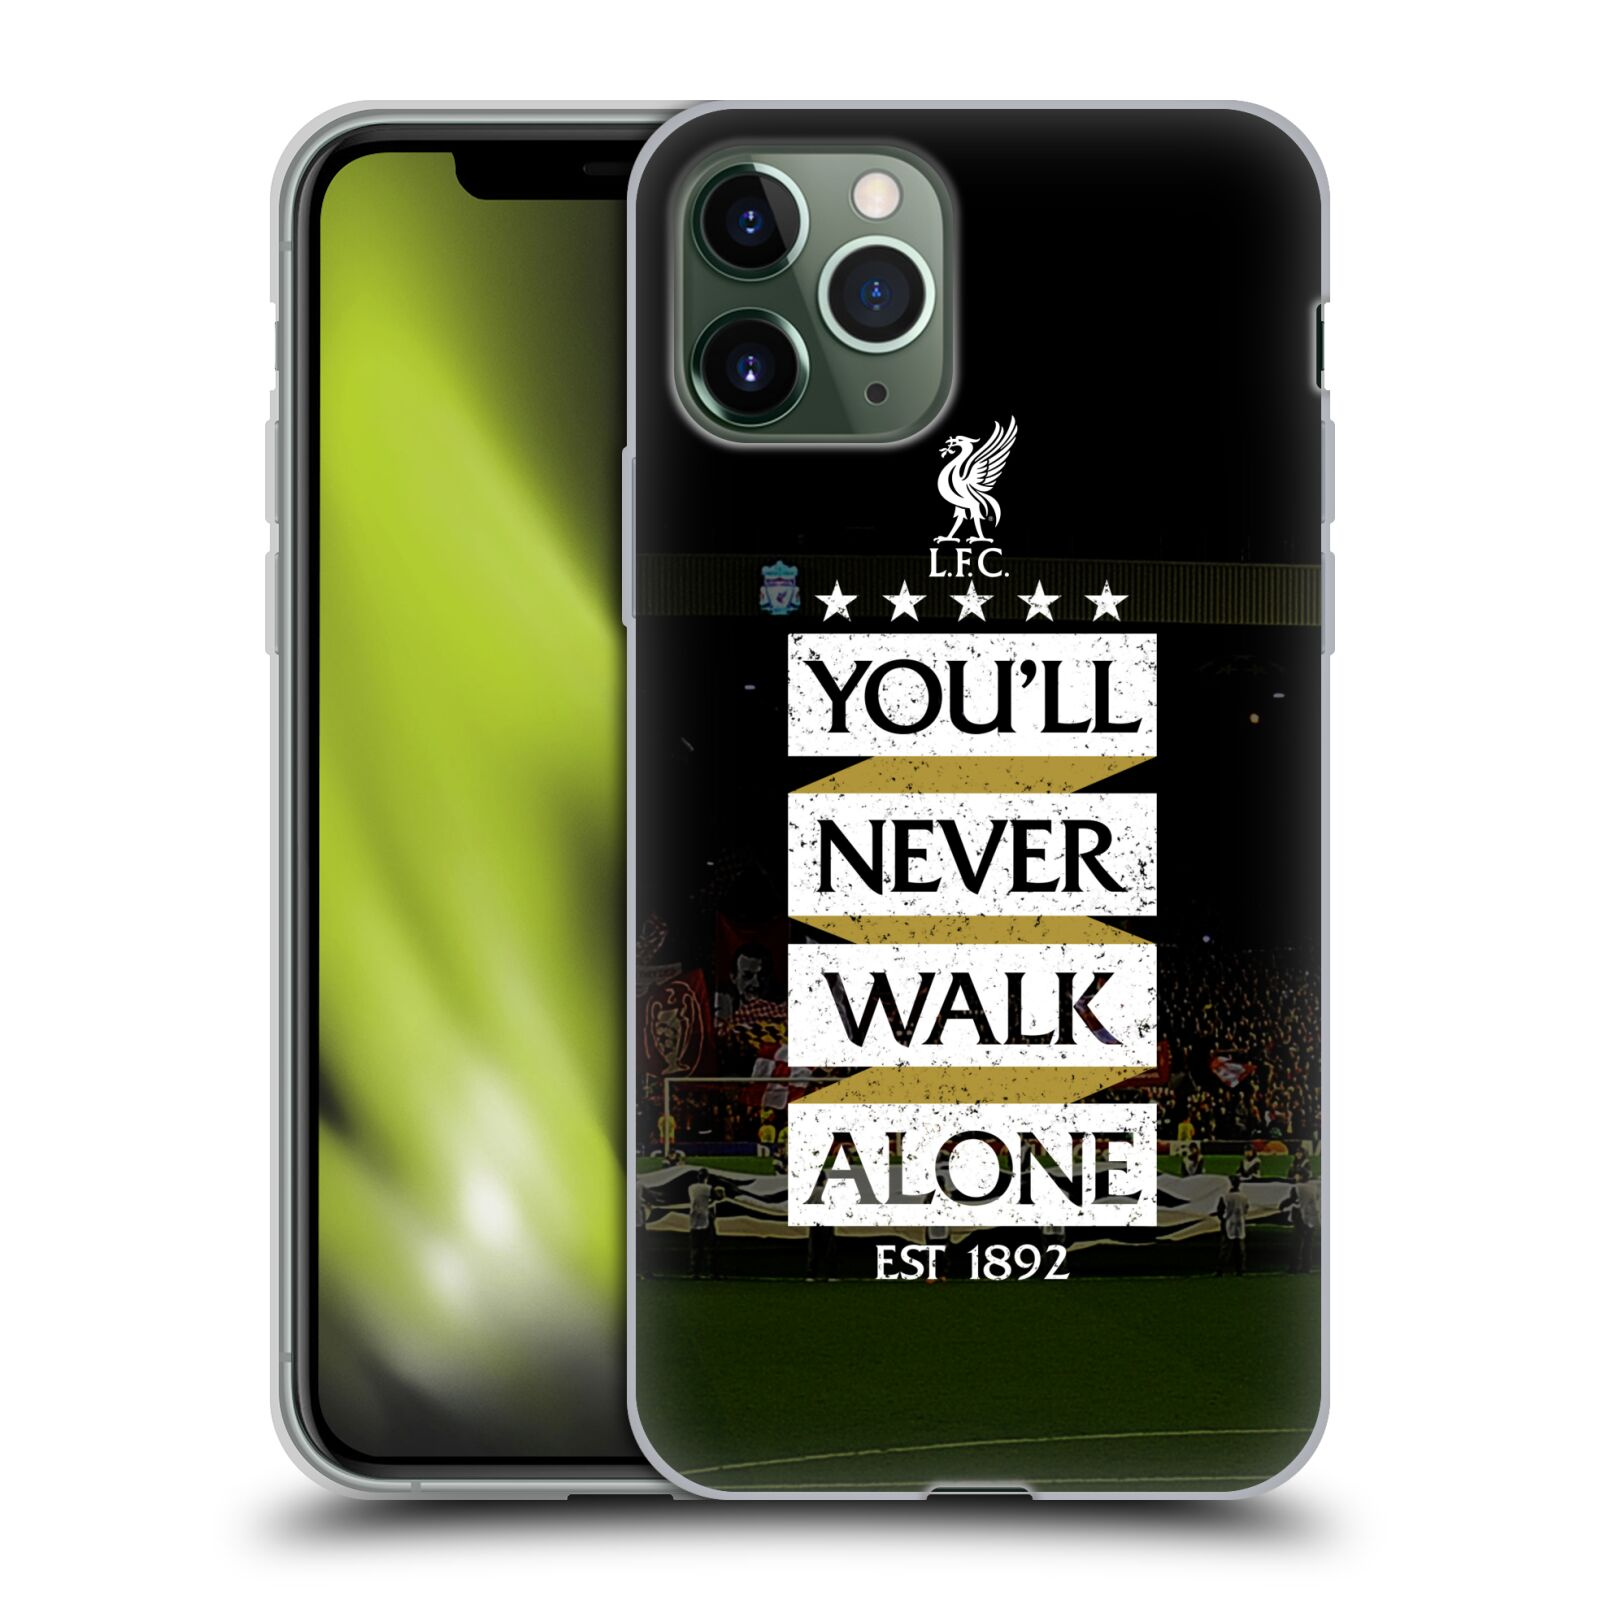 gumový obaly iphone 6 - Silikonové pouzdro na mobil Apple iPhone 11 Pro - Head Case - LFC You'll Never Walk Alone